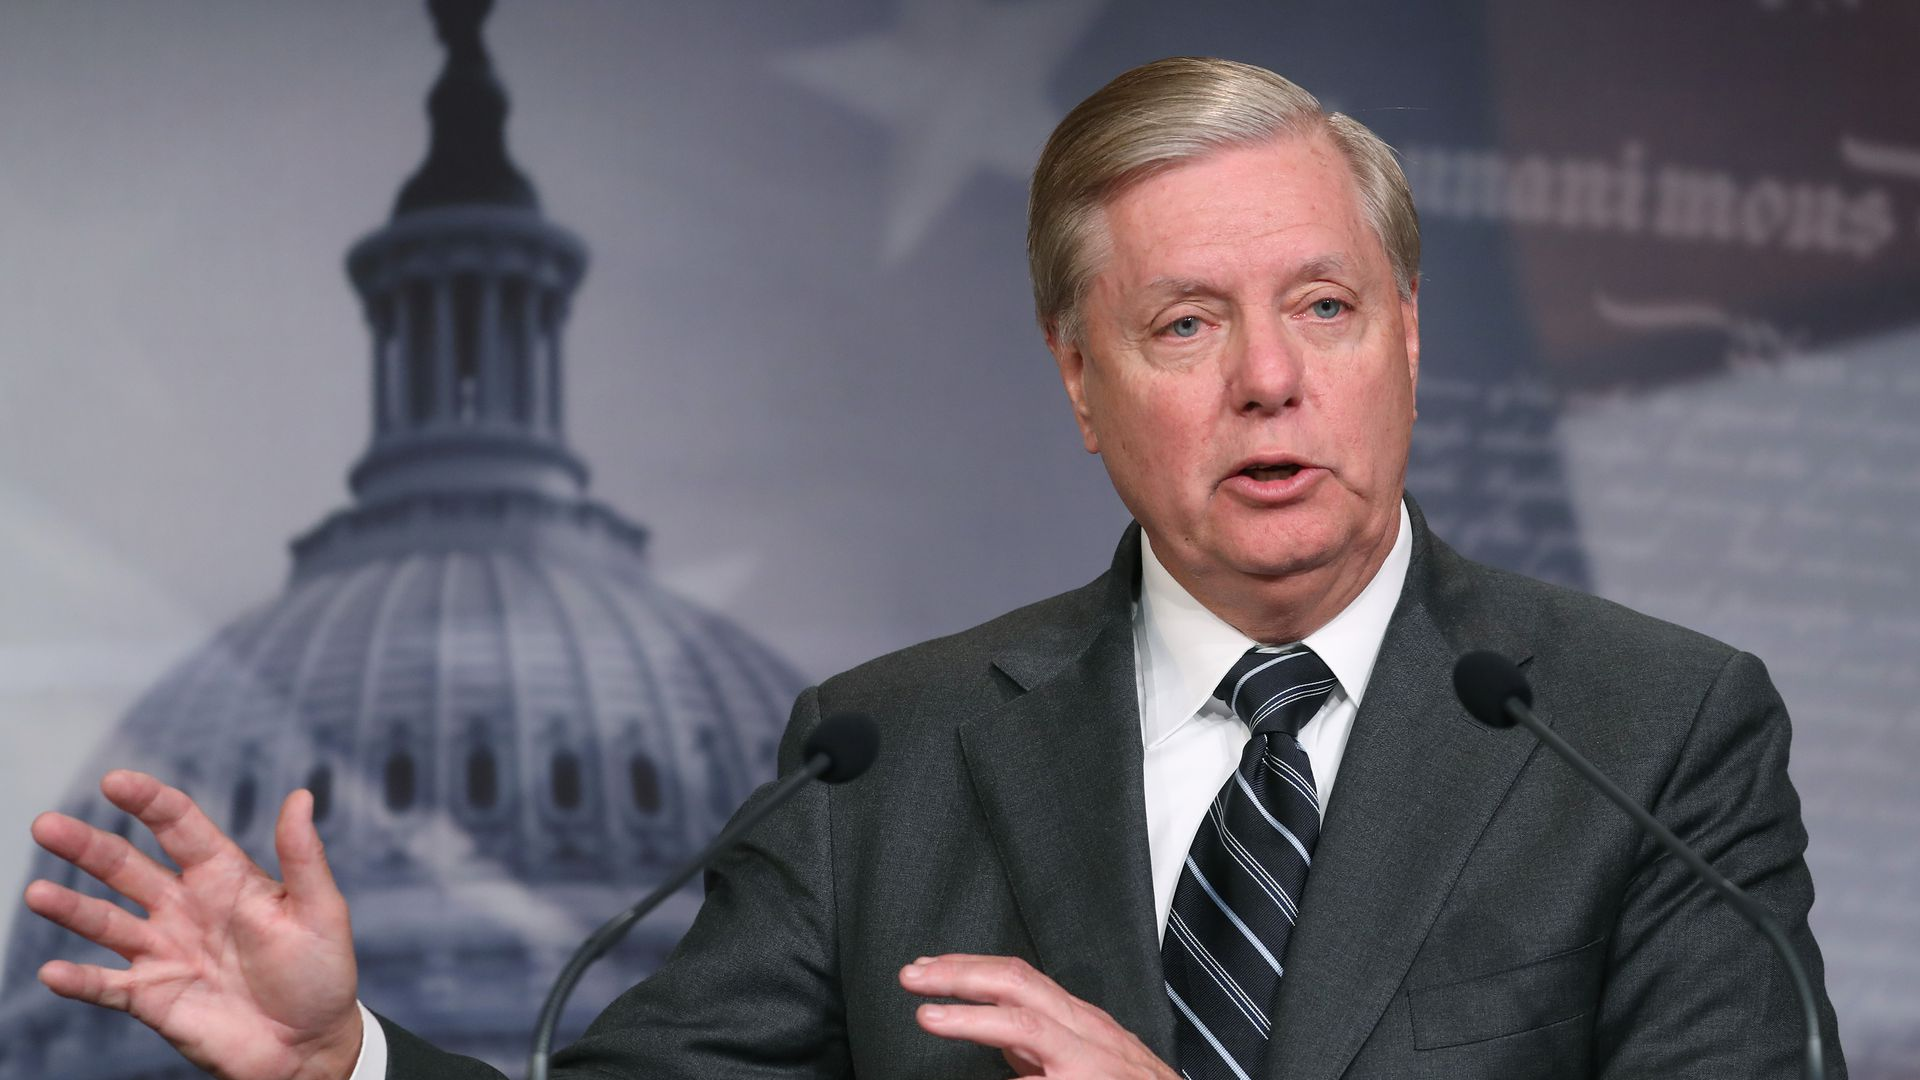 Lindsey Graham says he won't read House deposition transcripts